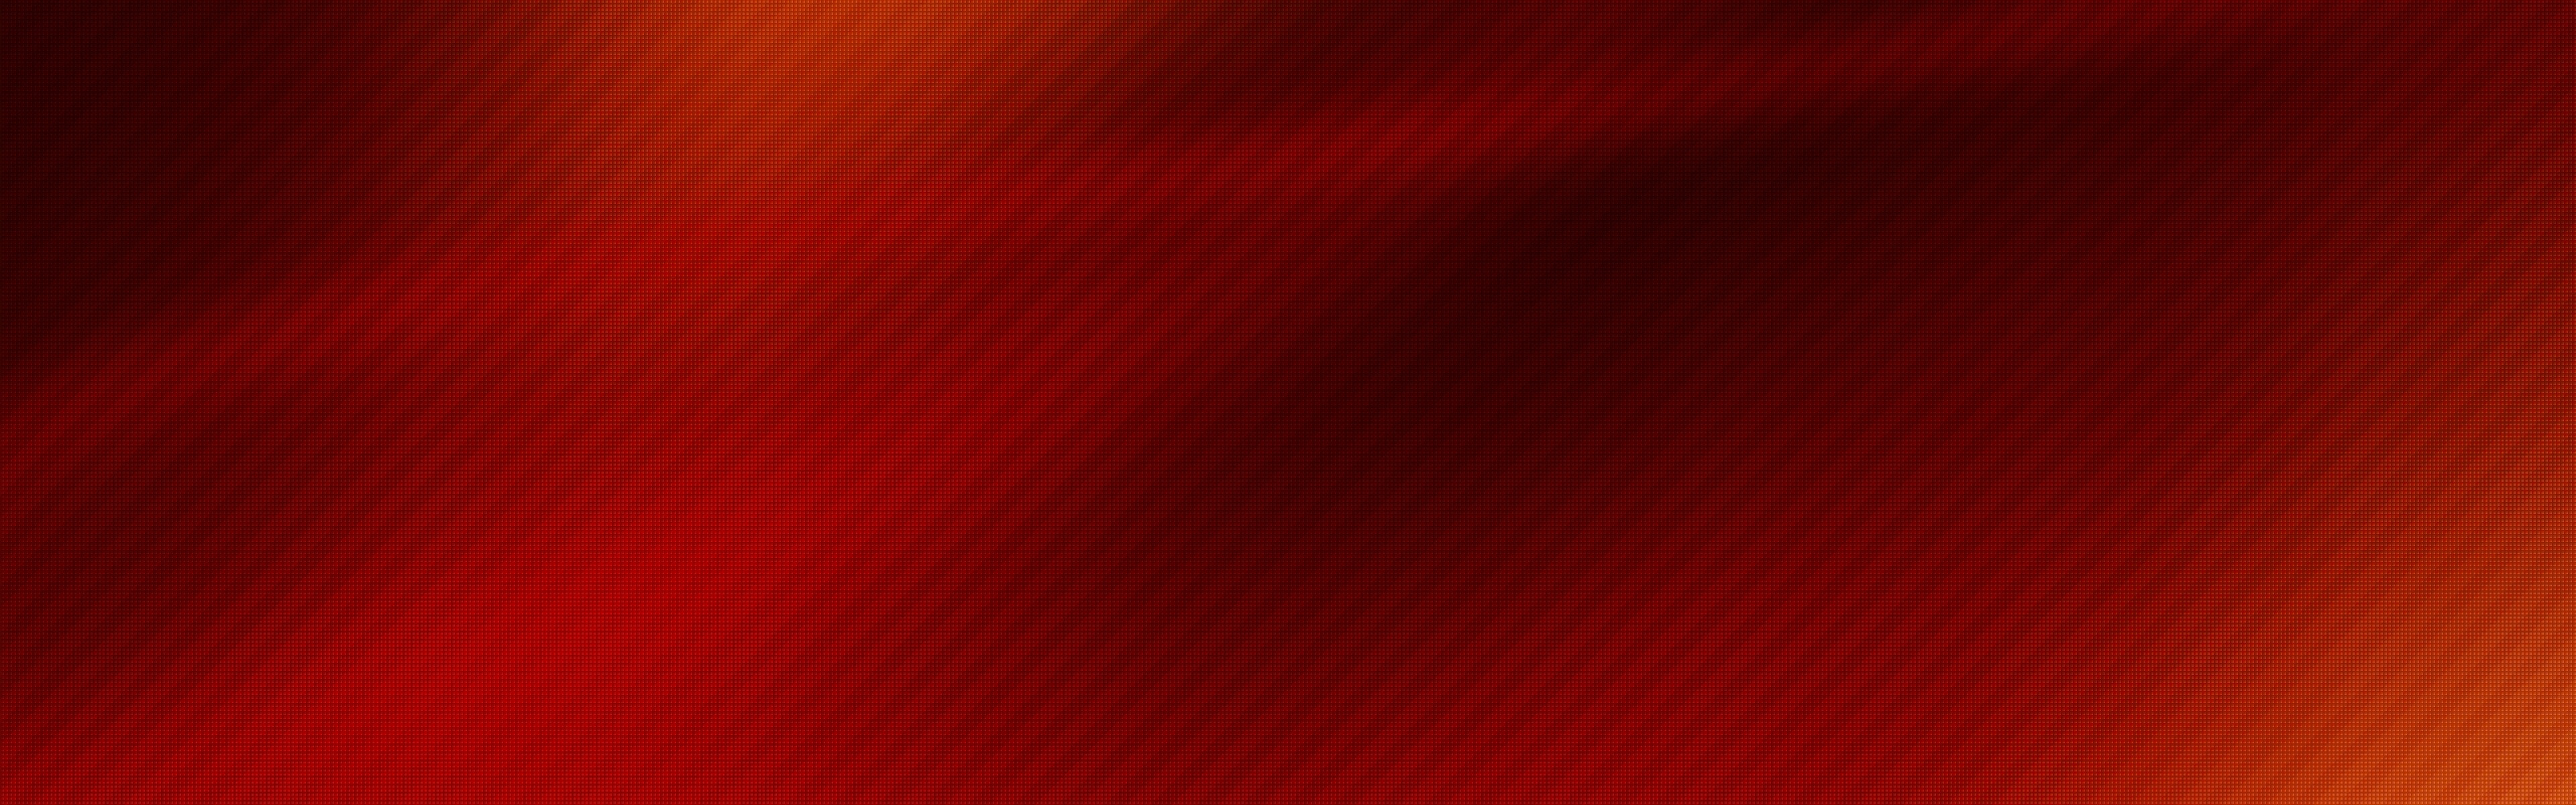 Deep Red Background (49+ images)